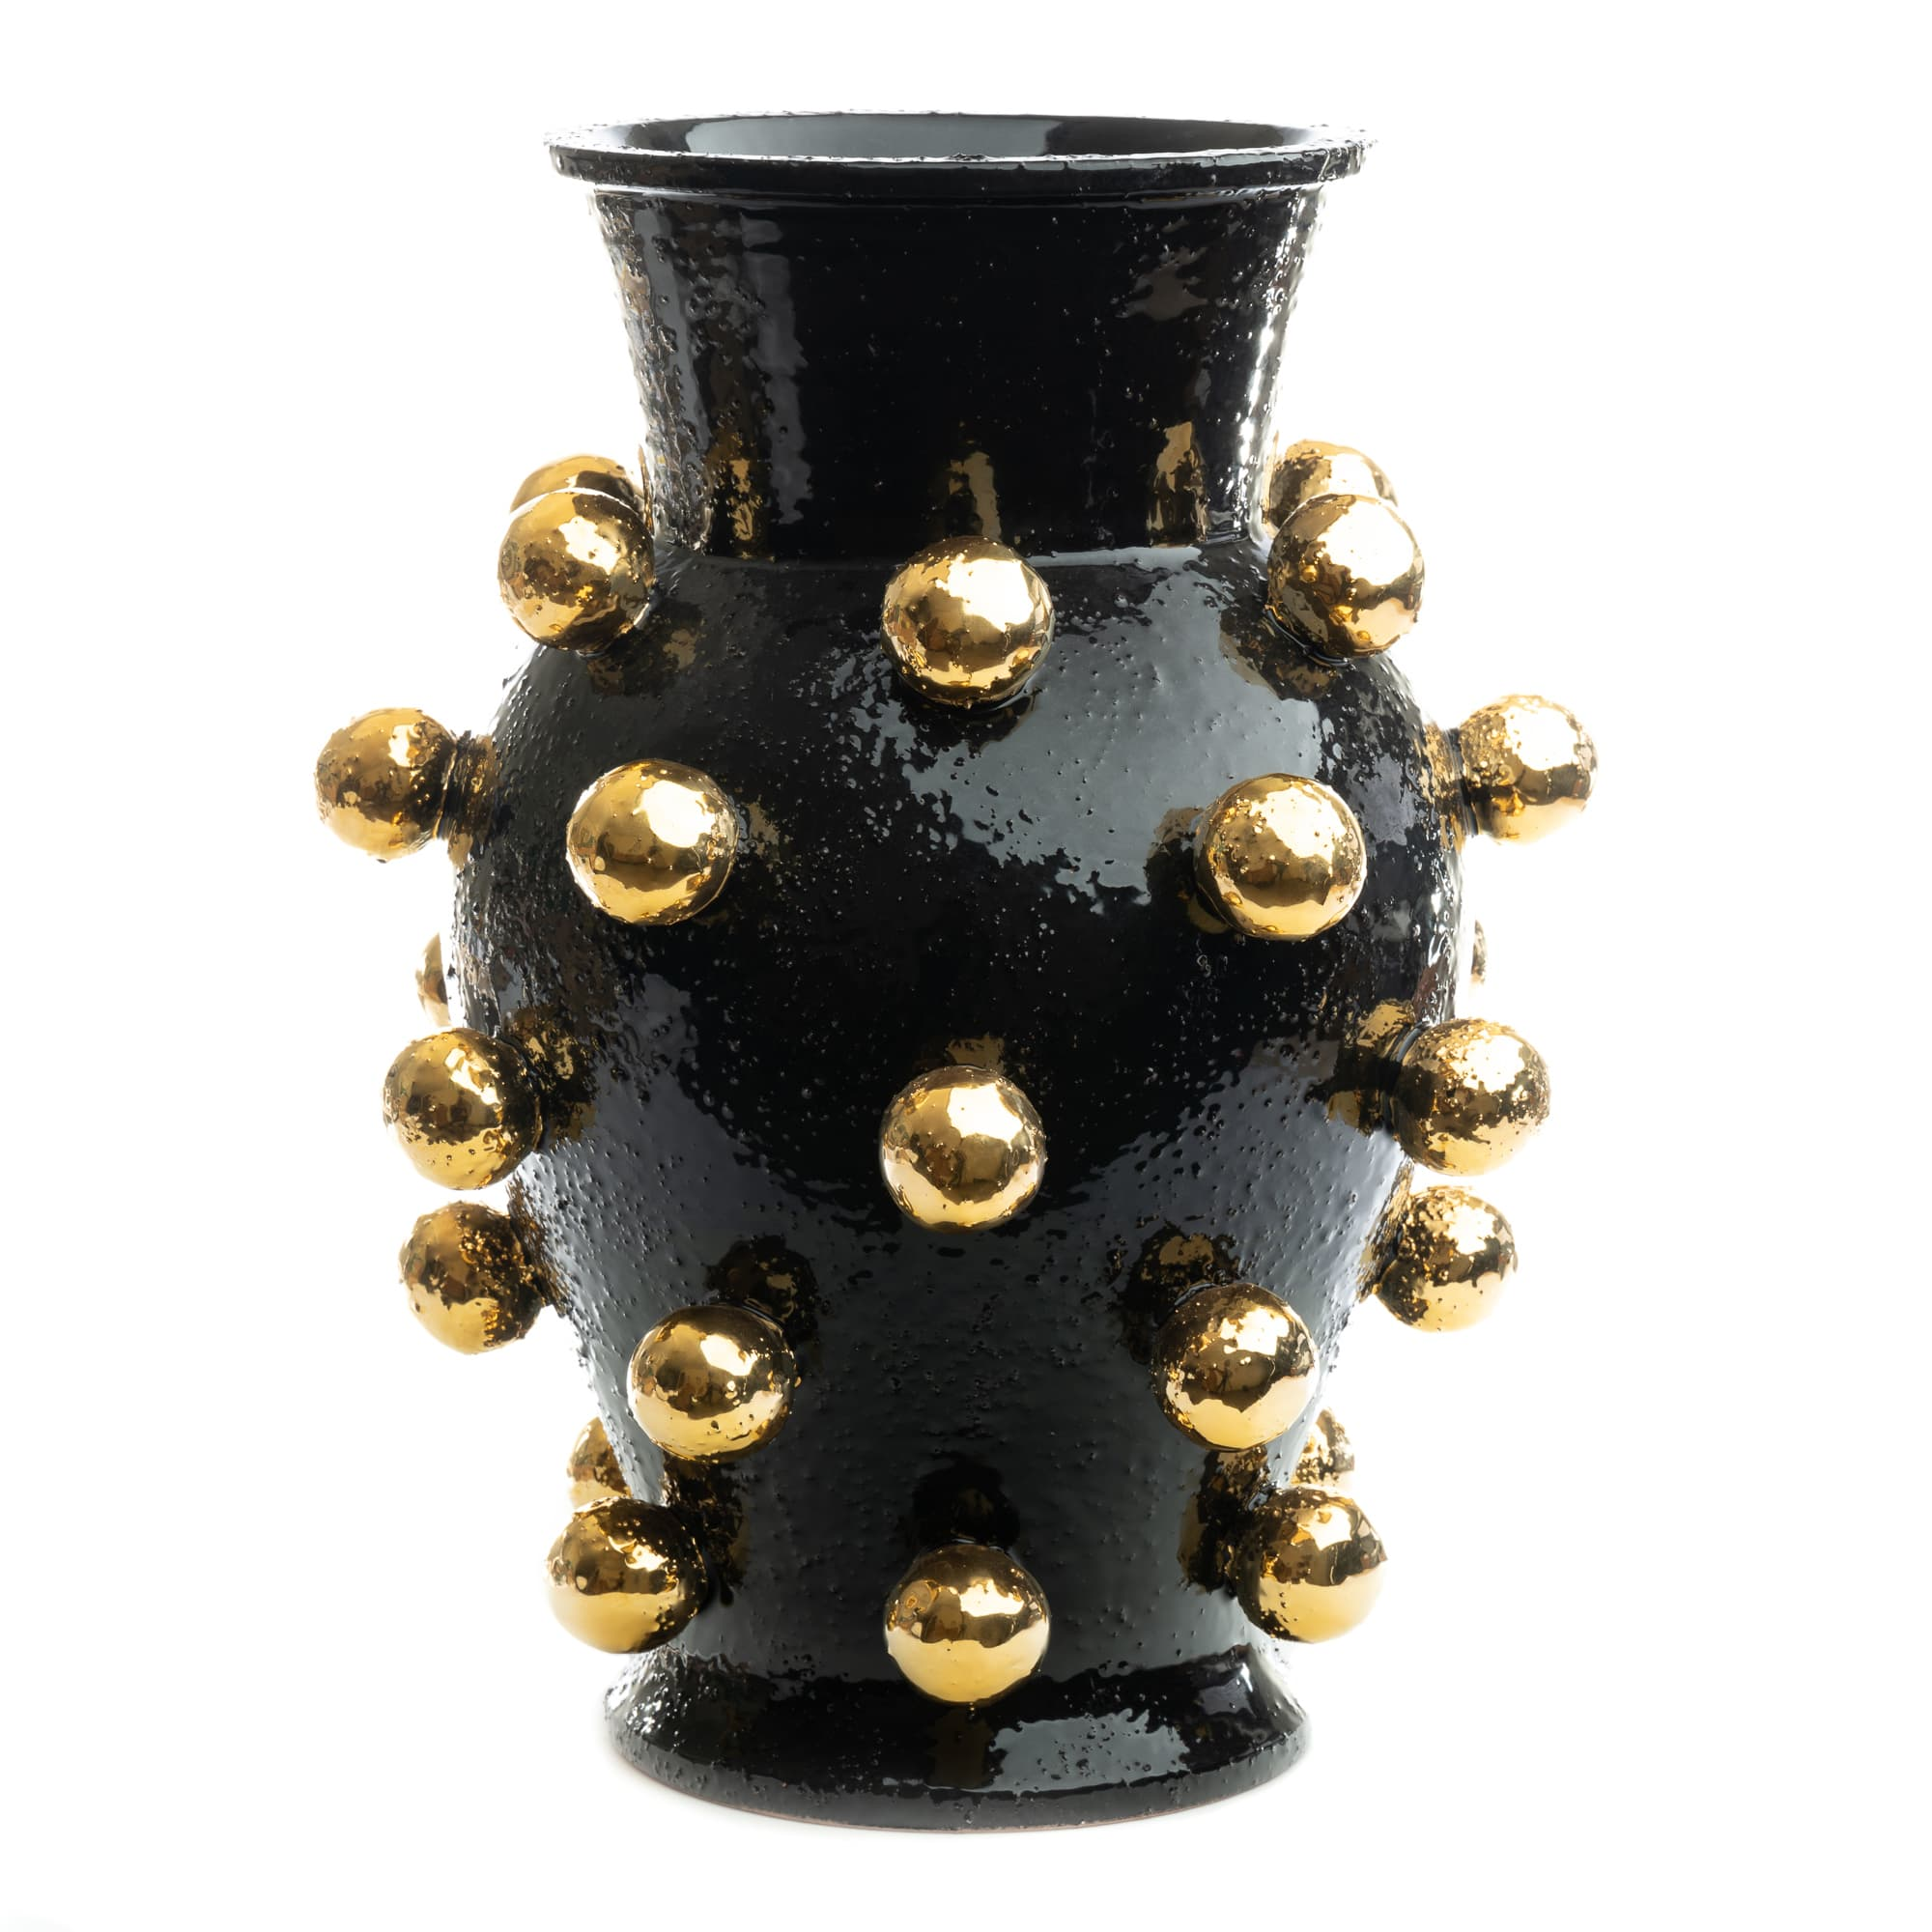 ND Dolfi Black Tall Vase with 24 Karate Gold Spheres